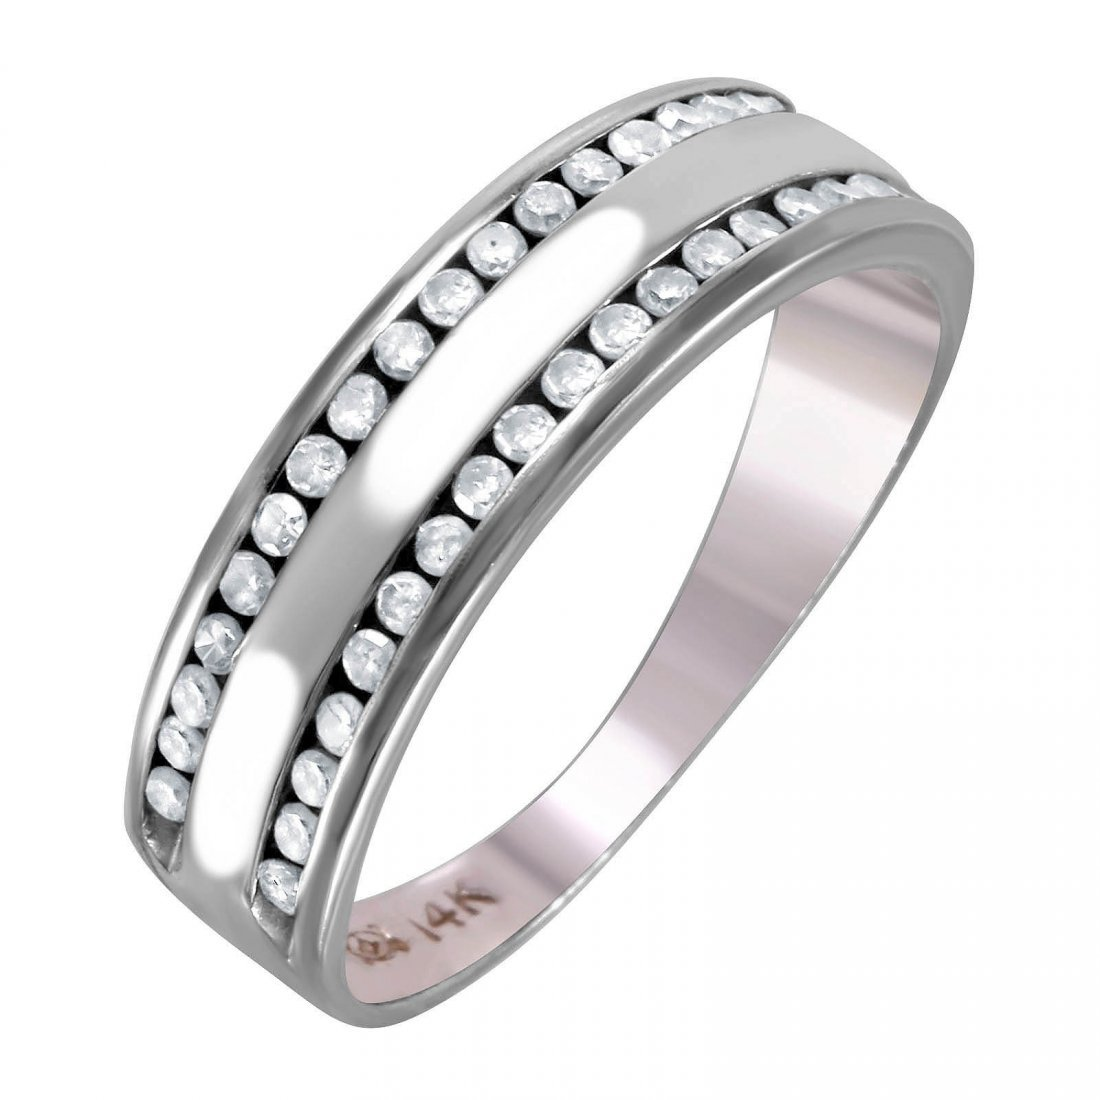 14K White Gold Diamond Wedding Band, Size 5